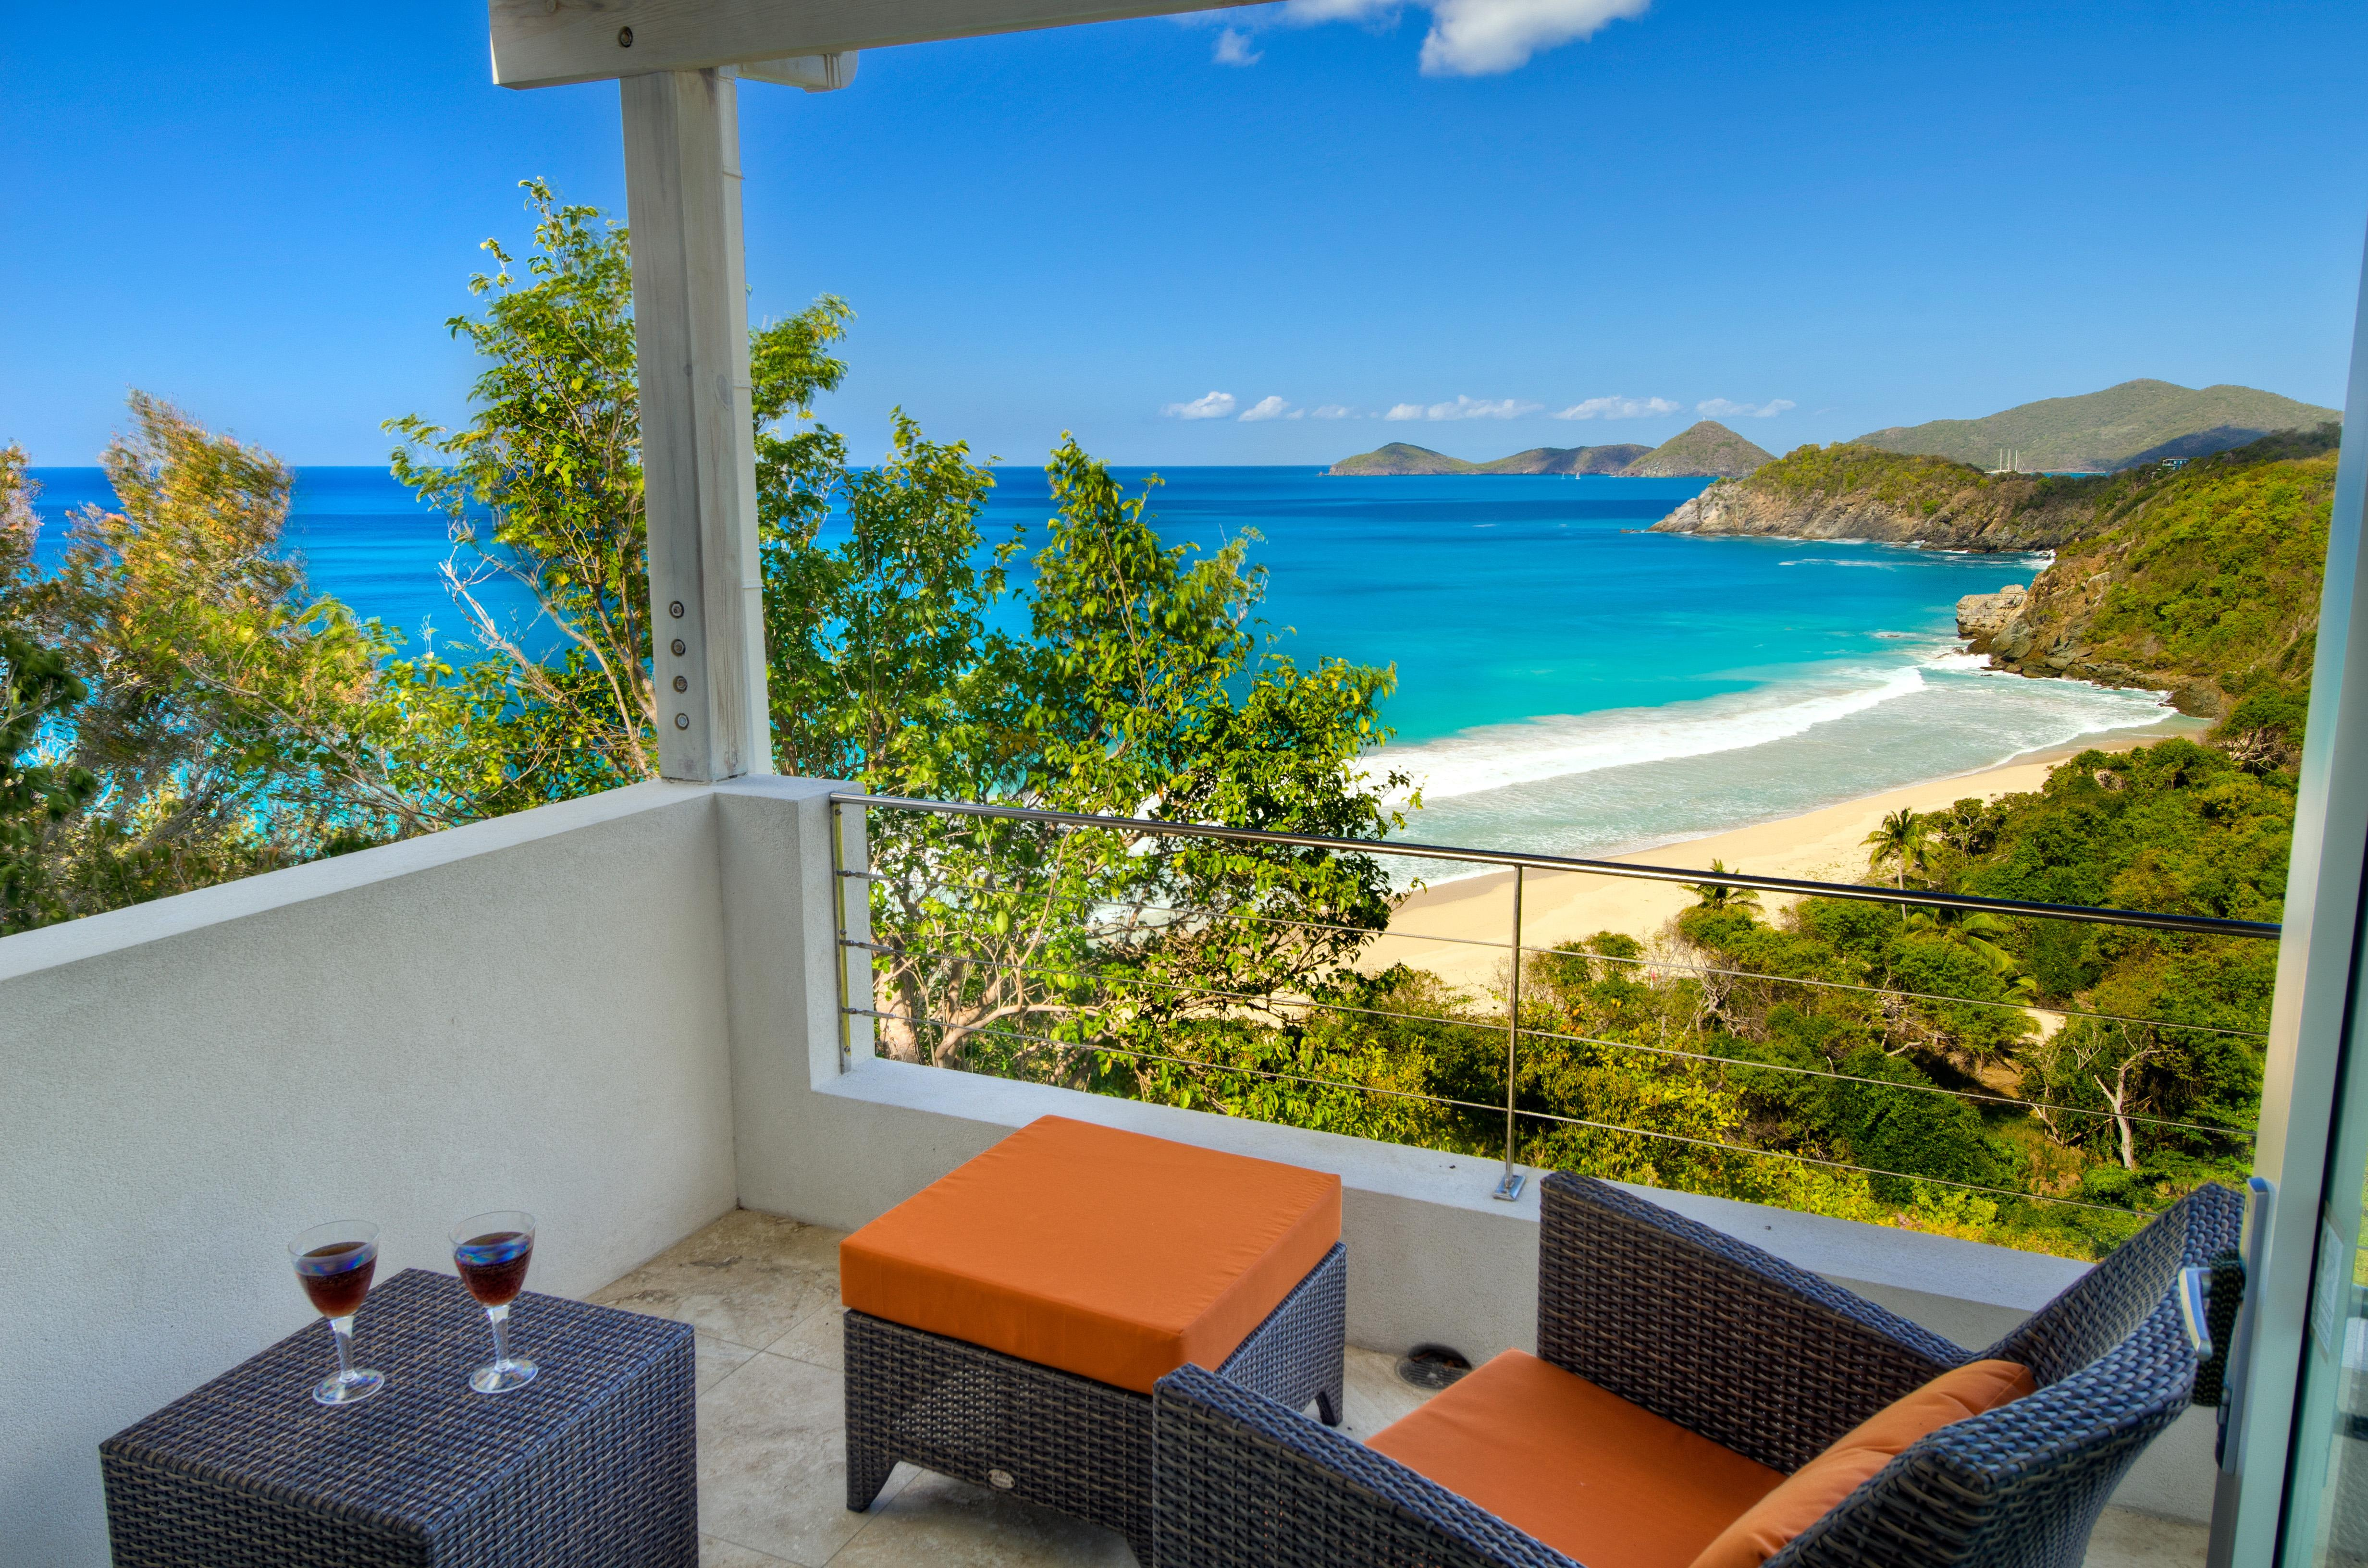 Airy Multilevel Villa Overlooking Trunk Bay